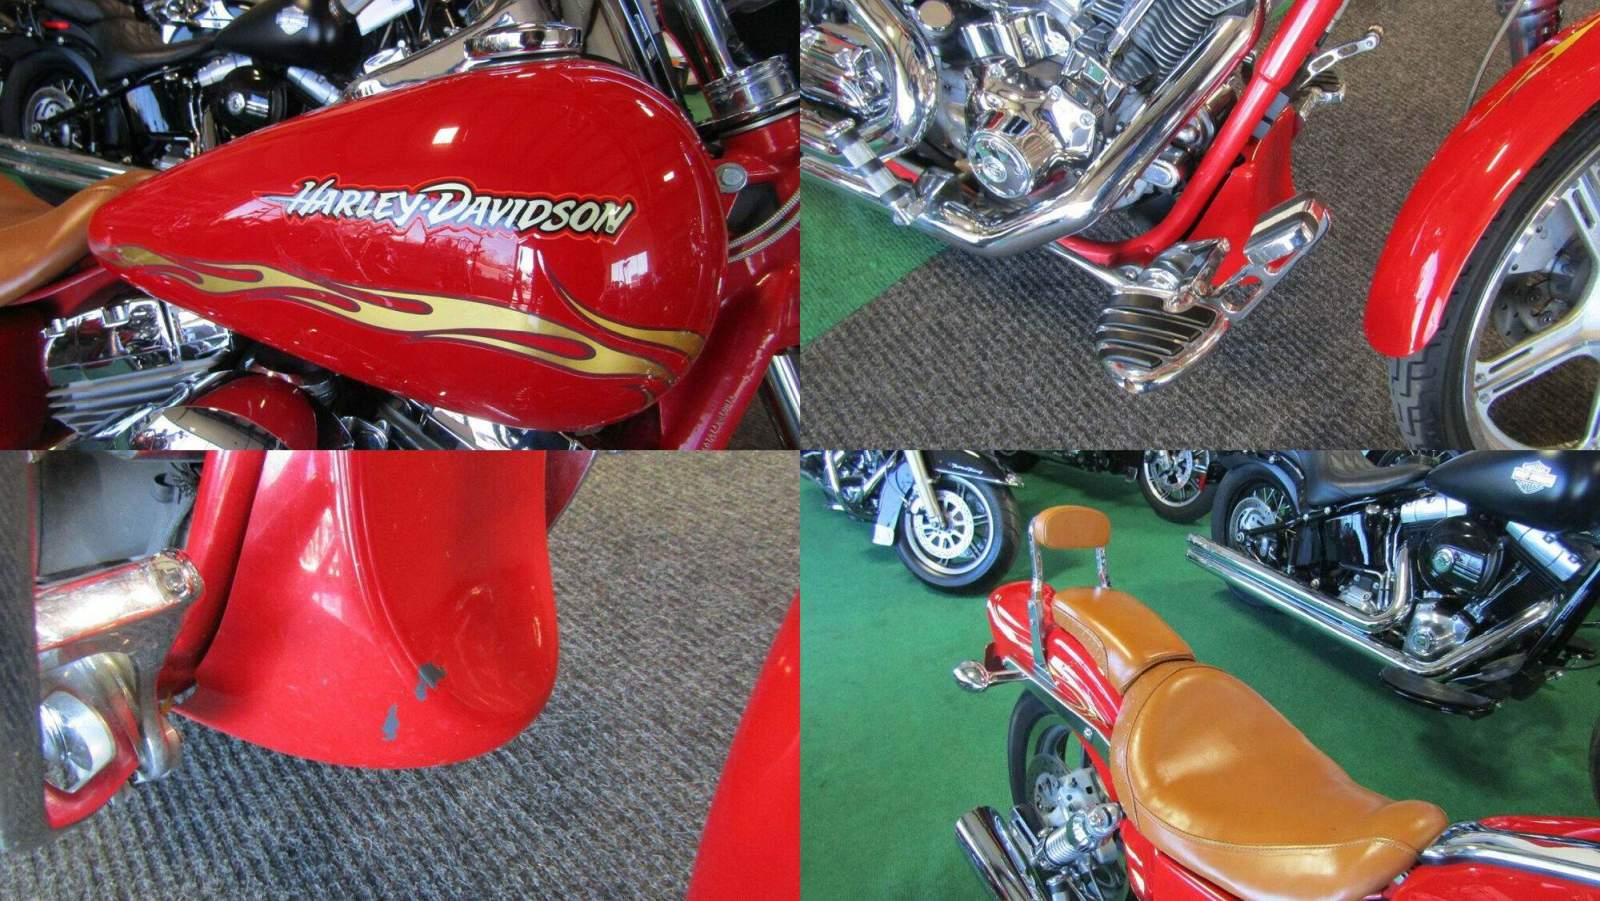 2001 Harley-Davidson DYNA WIDE GLIDE SCREAMIN' EAGLE RED w 23k GOLD FLAMES used for sale